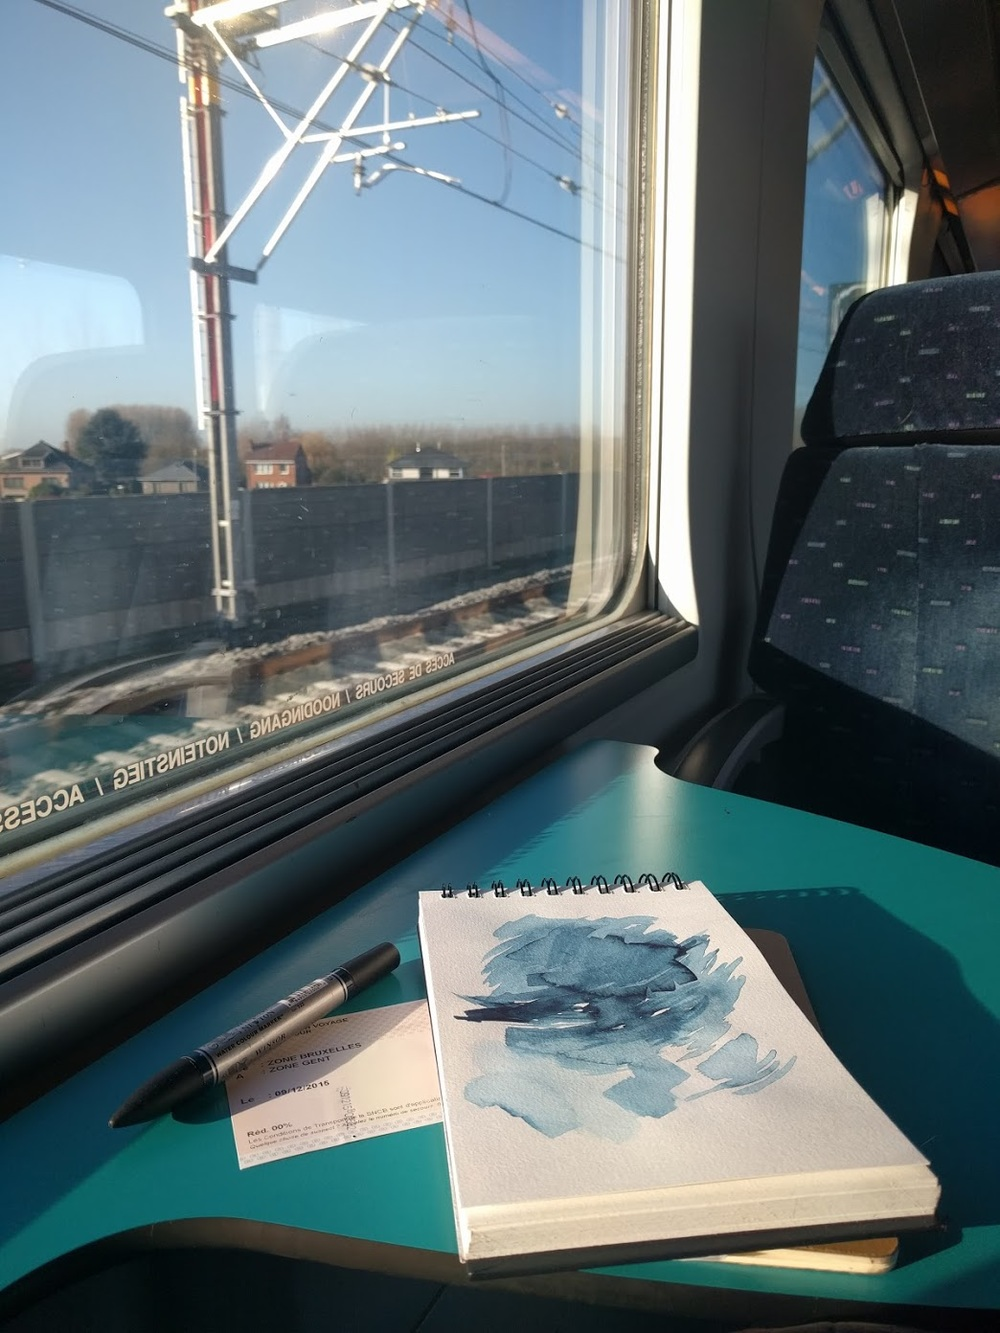 EH Sherman Art in Belgium - train sketch